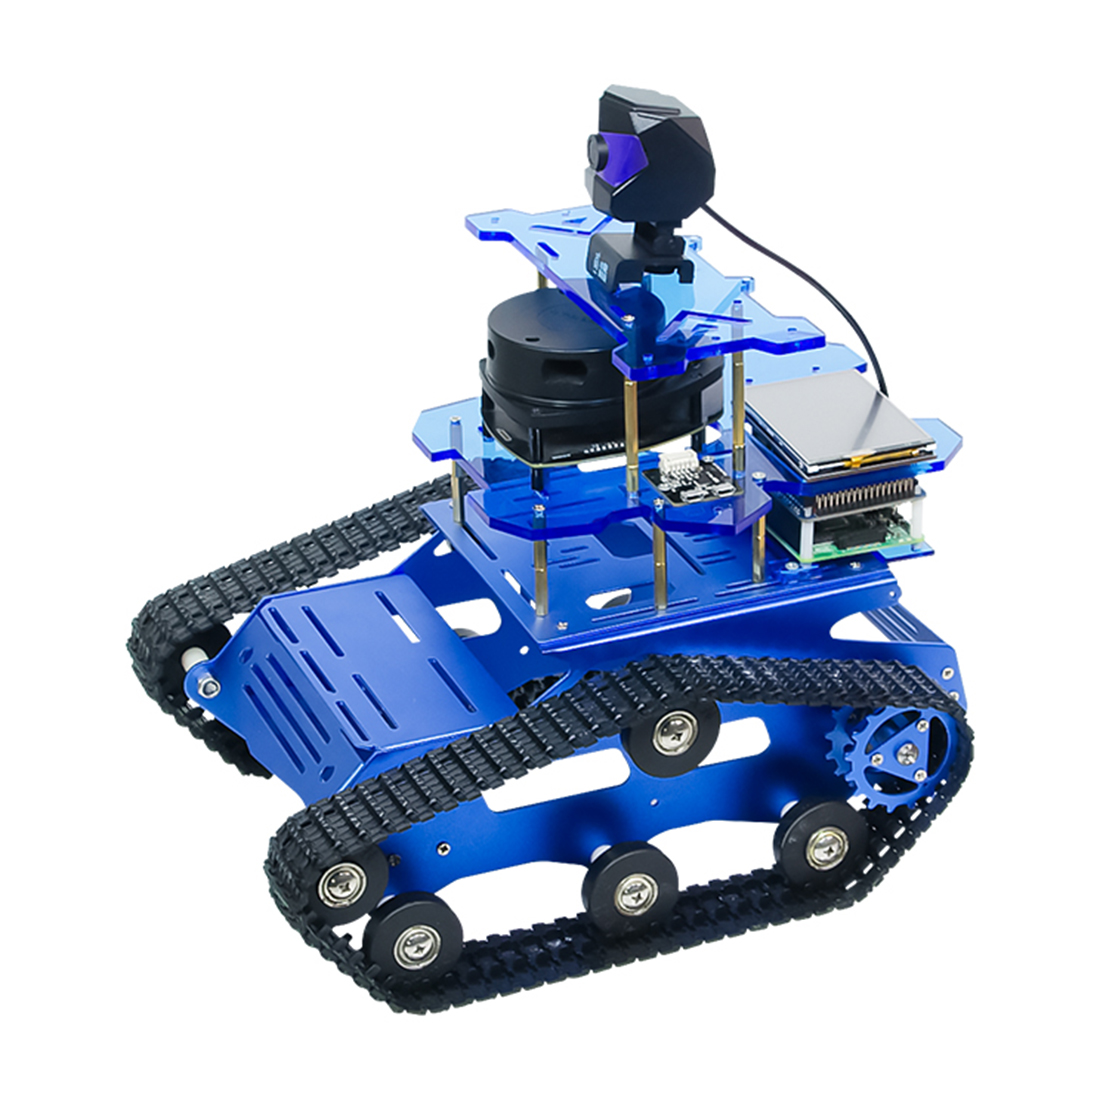 DIY Smart Robot Tank Chassis Car with Laser Radar for Raspberry Pi 4 (2G) for boys kids birthdaty gifts 2020 - Blue